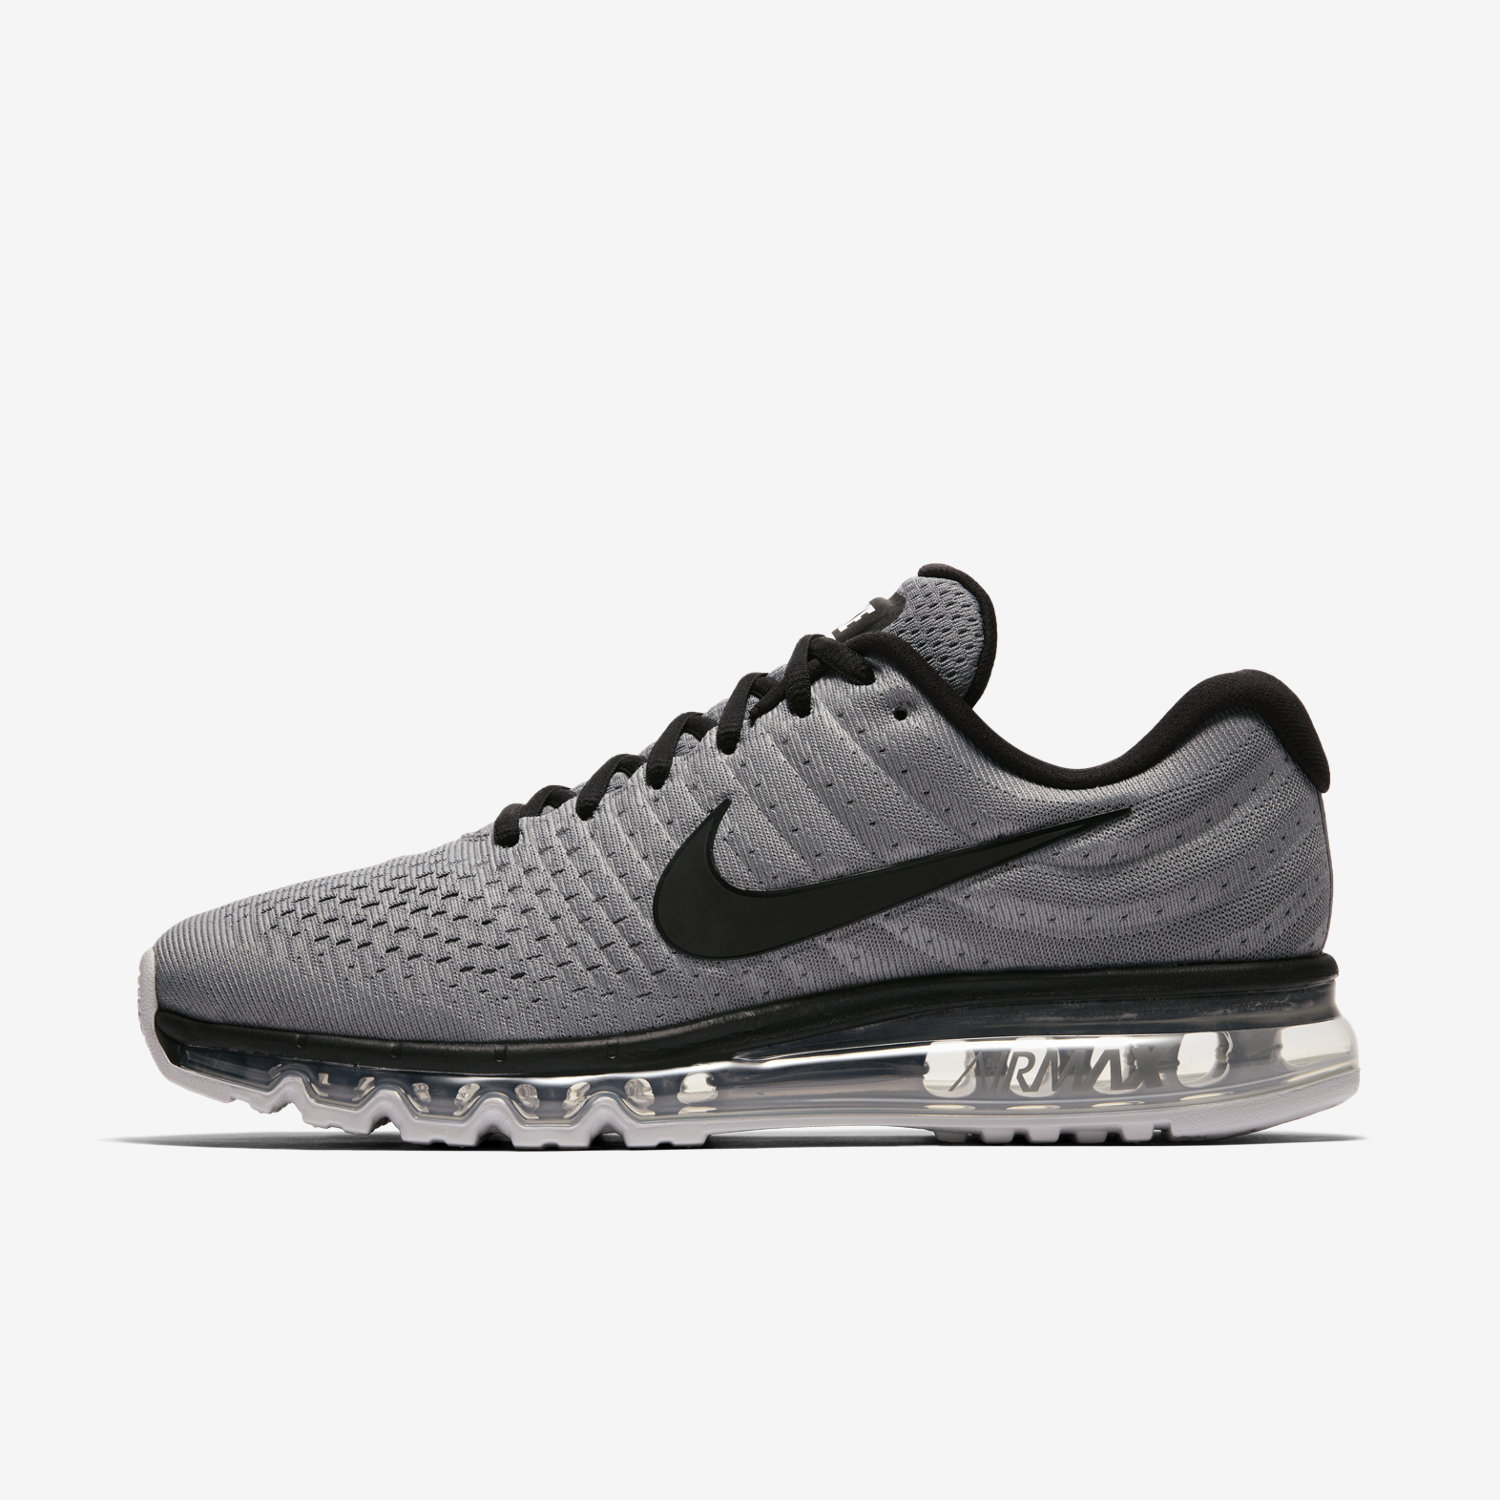 9079b9694f1d nike full length air cheap   OFF41% The Largest Catalog Discounts